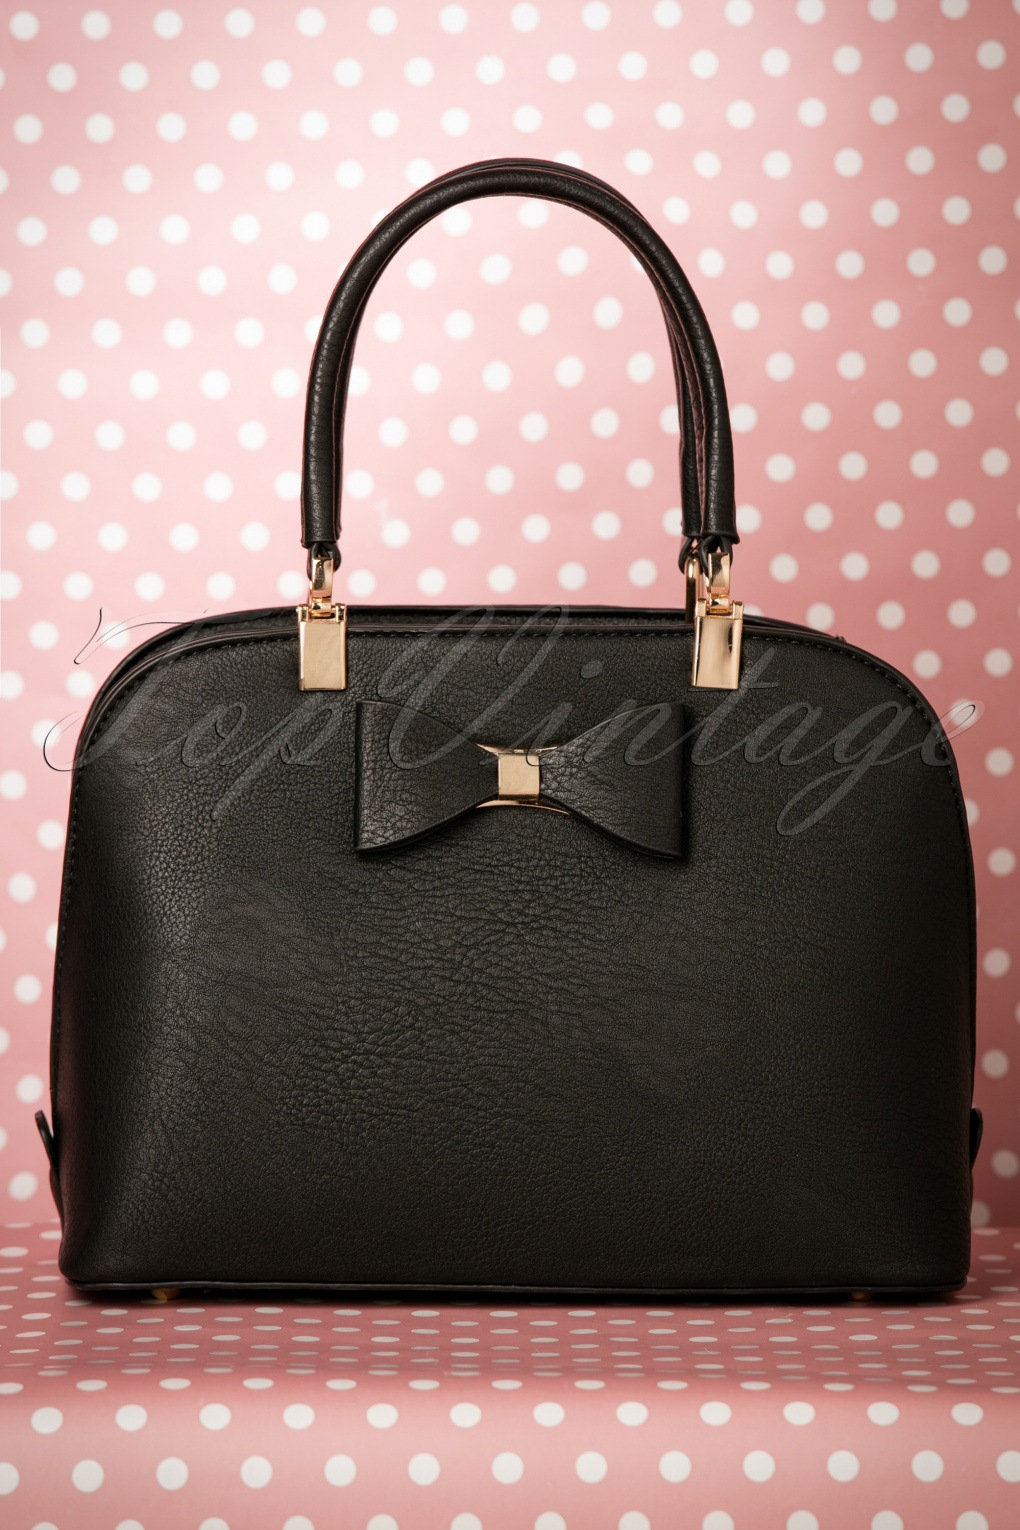 Retro Handbags, Purses, Wallets, Bags 60s Betty Bow Handbag in Black £38.37 AT vintagedancer.com